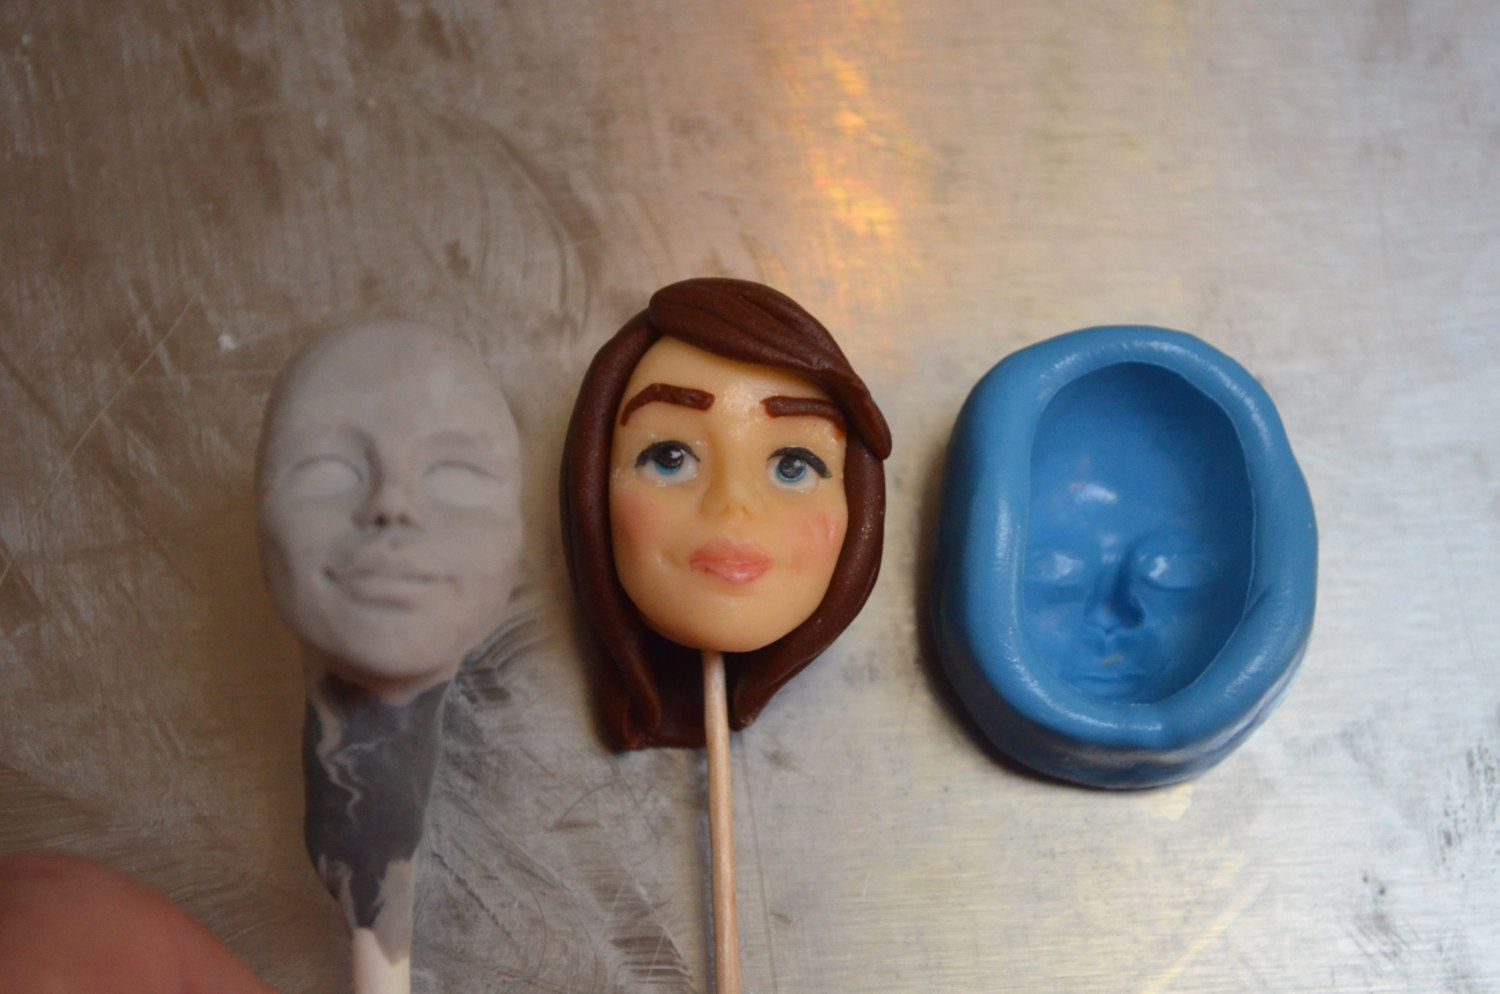 Food safe silicone face mold by artisancakecompany on Etsy, $25.00